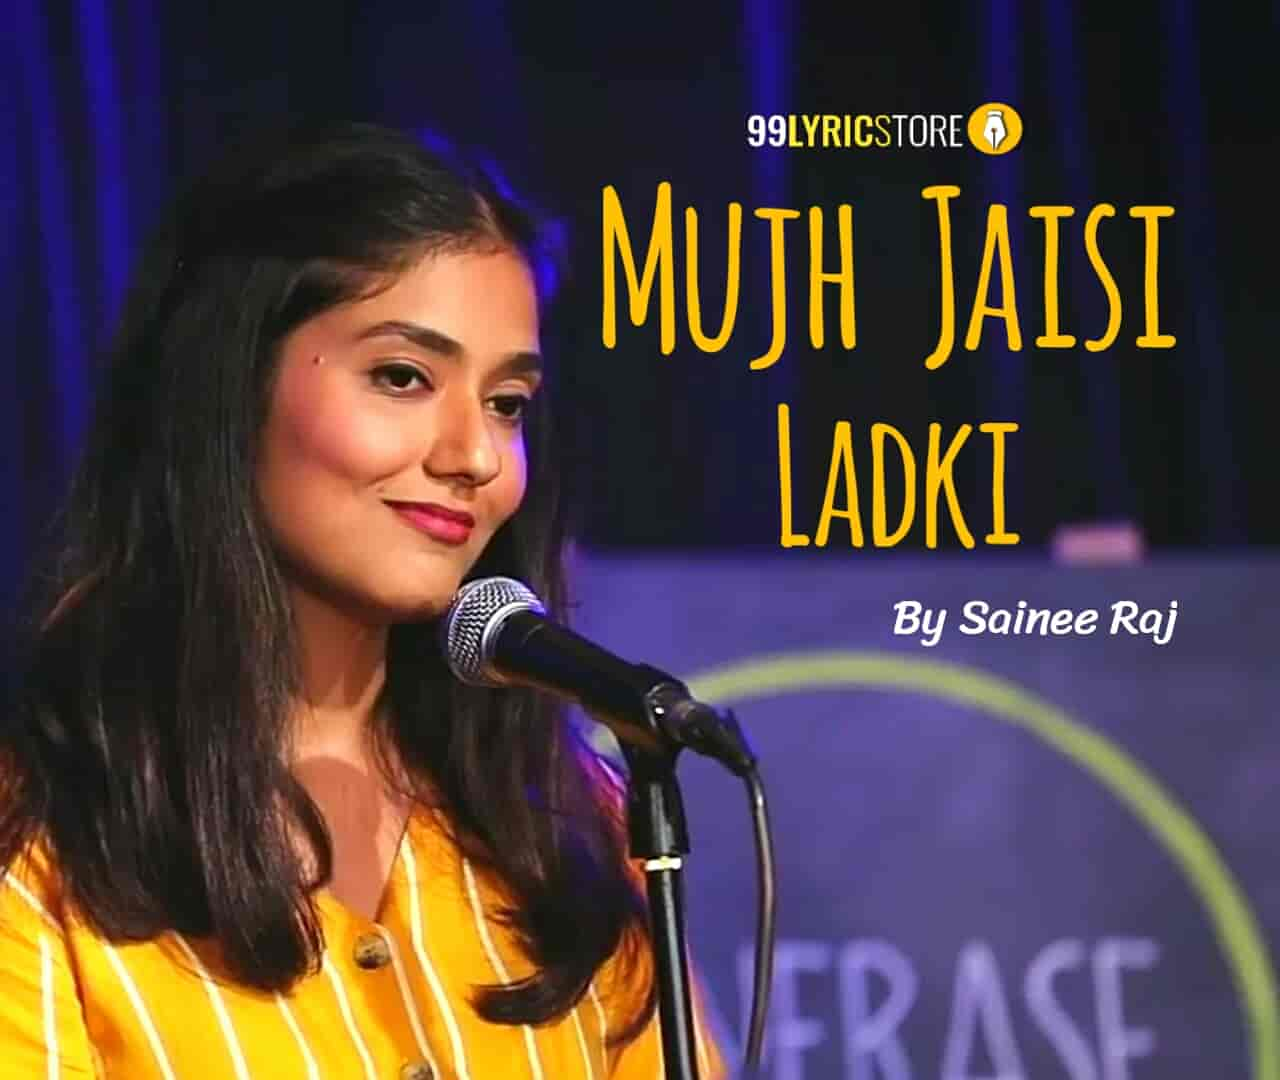 This Beautiful Poem 'Mujh Jaisi Ladki' Has written and Performed by Sainee Raj on the stage of 'UnErase Poetry'.